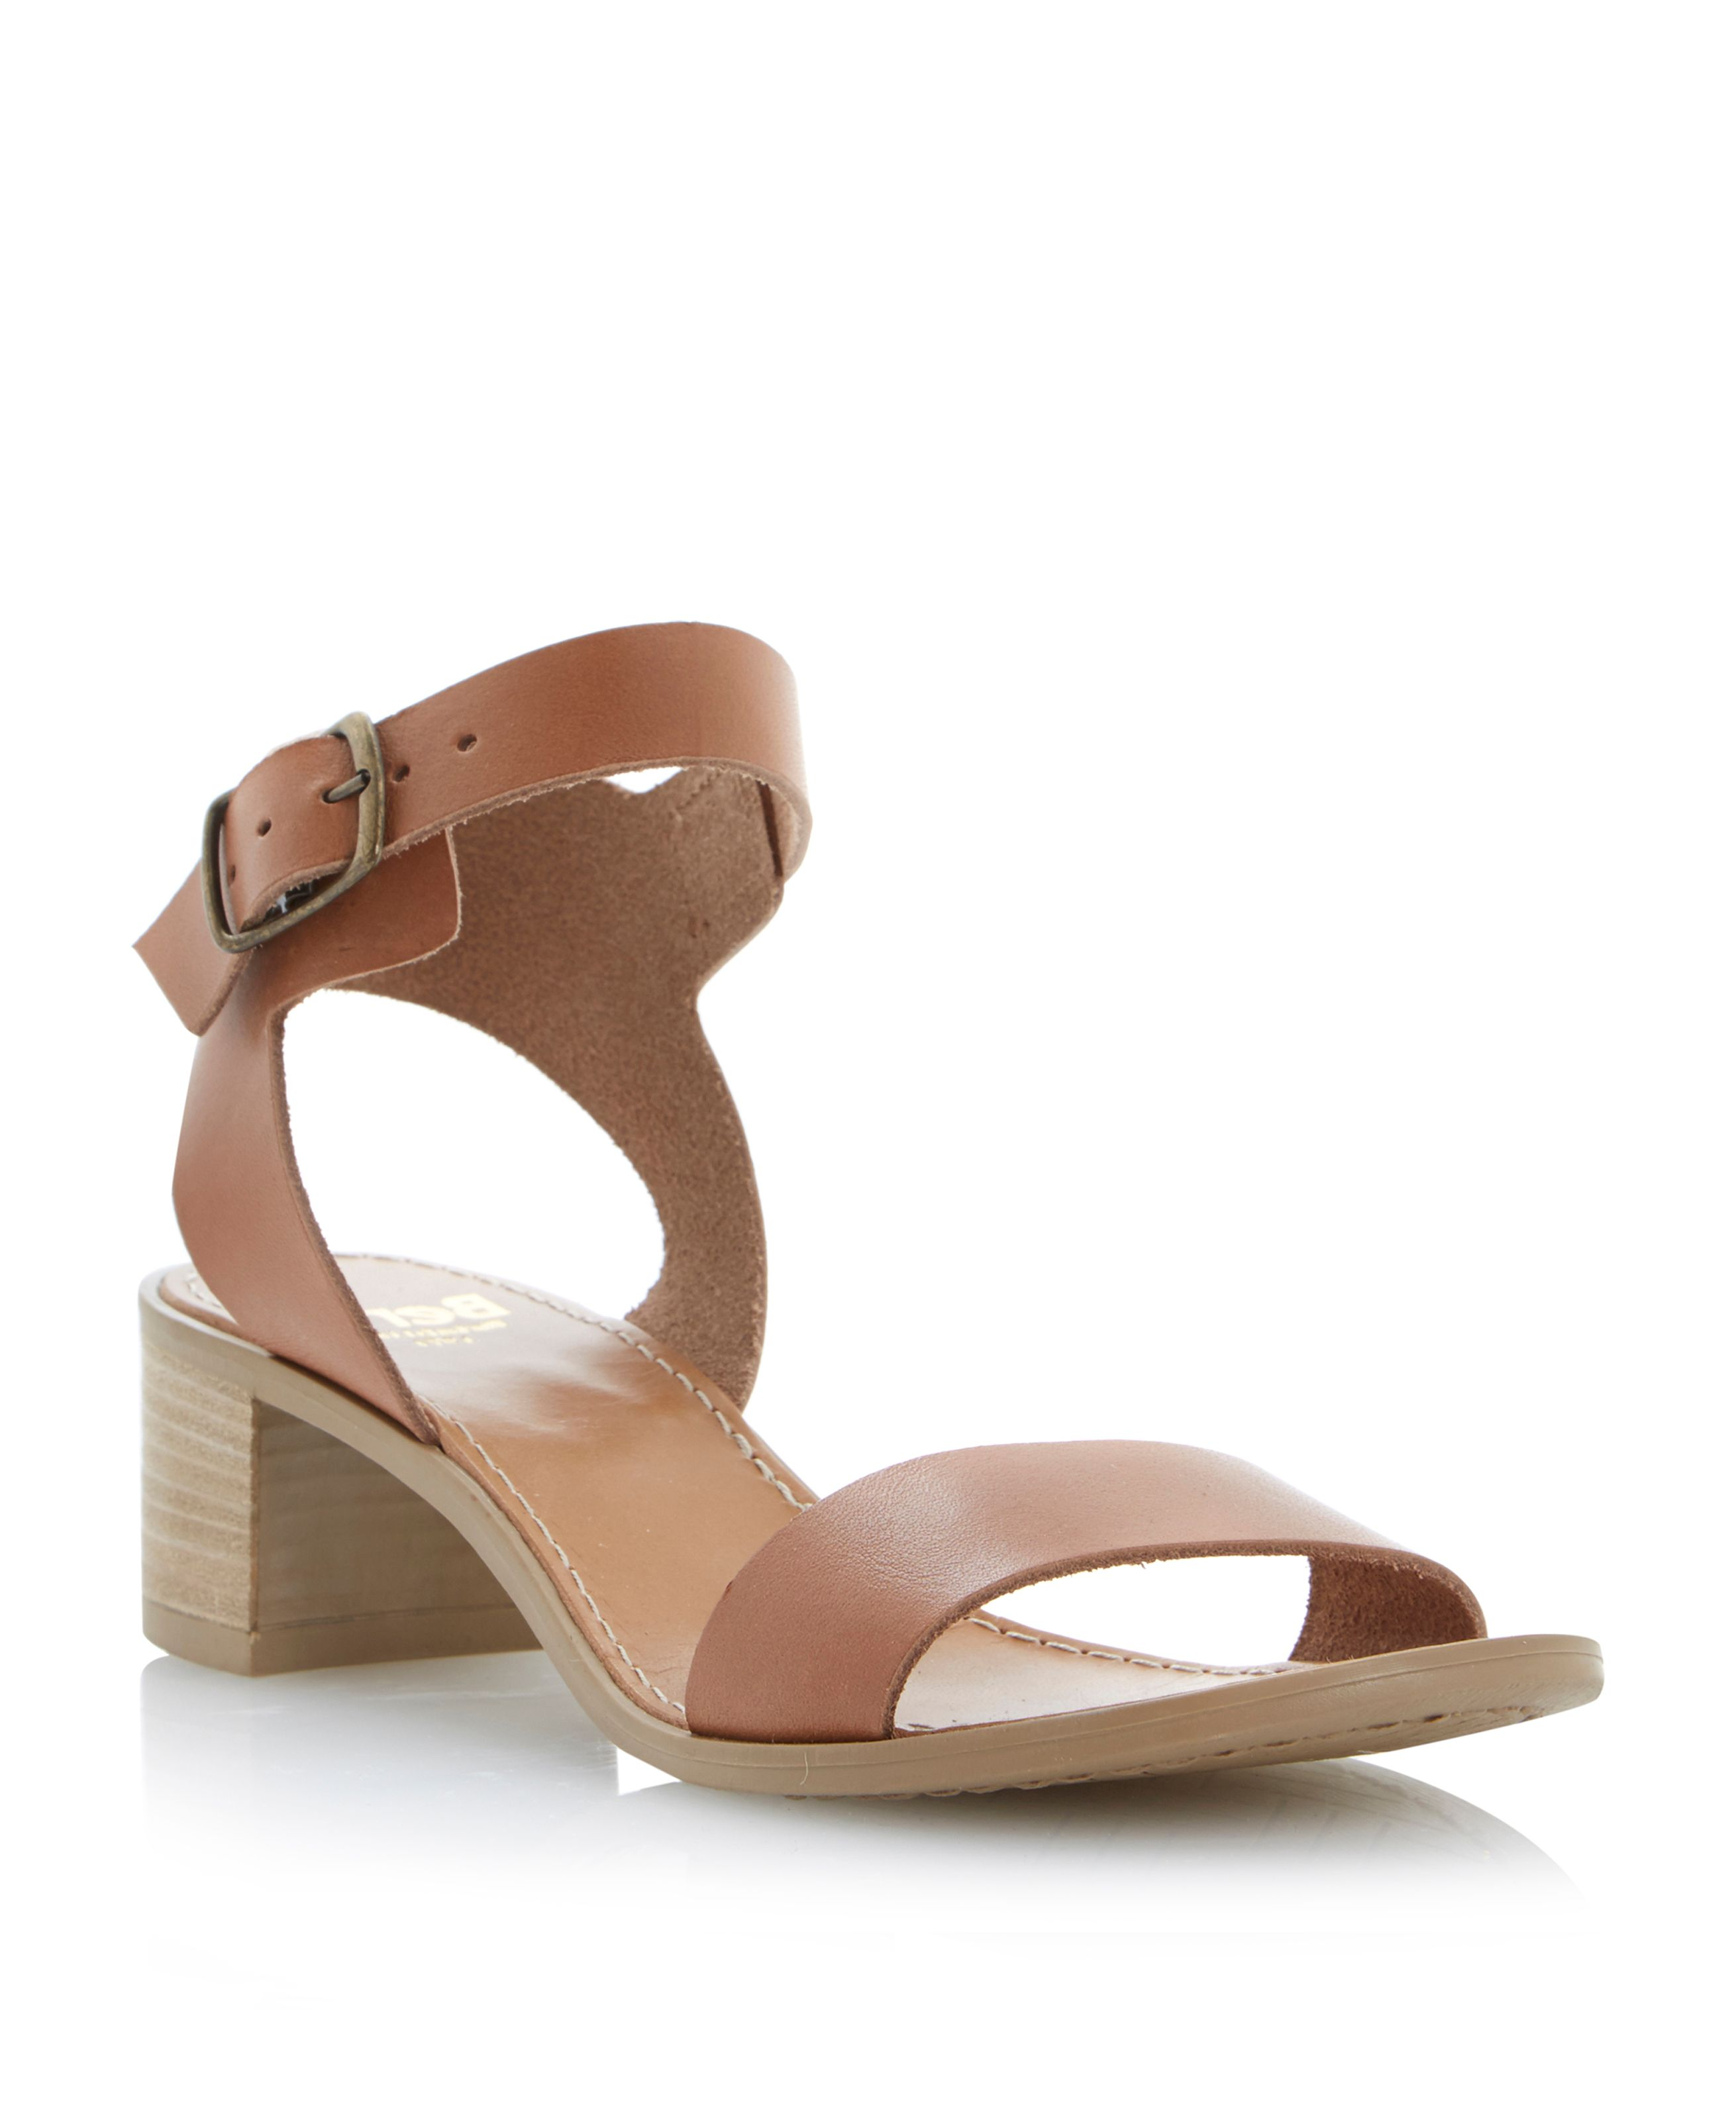 Hobart leather ankle strap block heel sandals